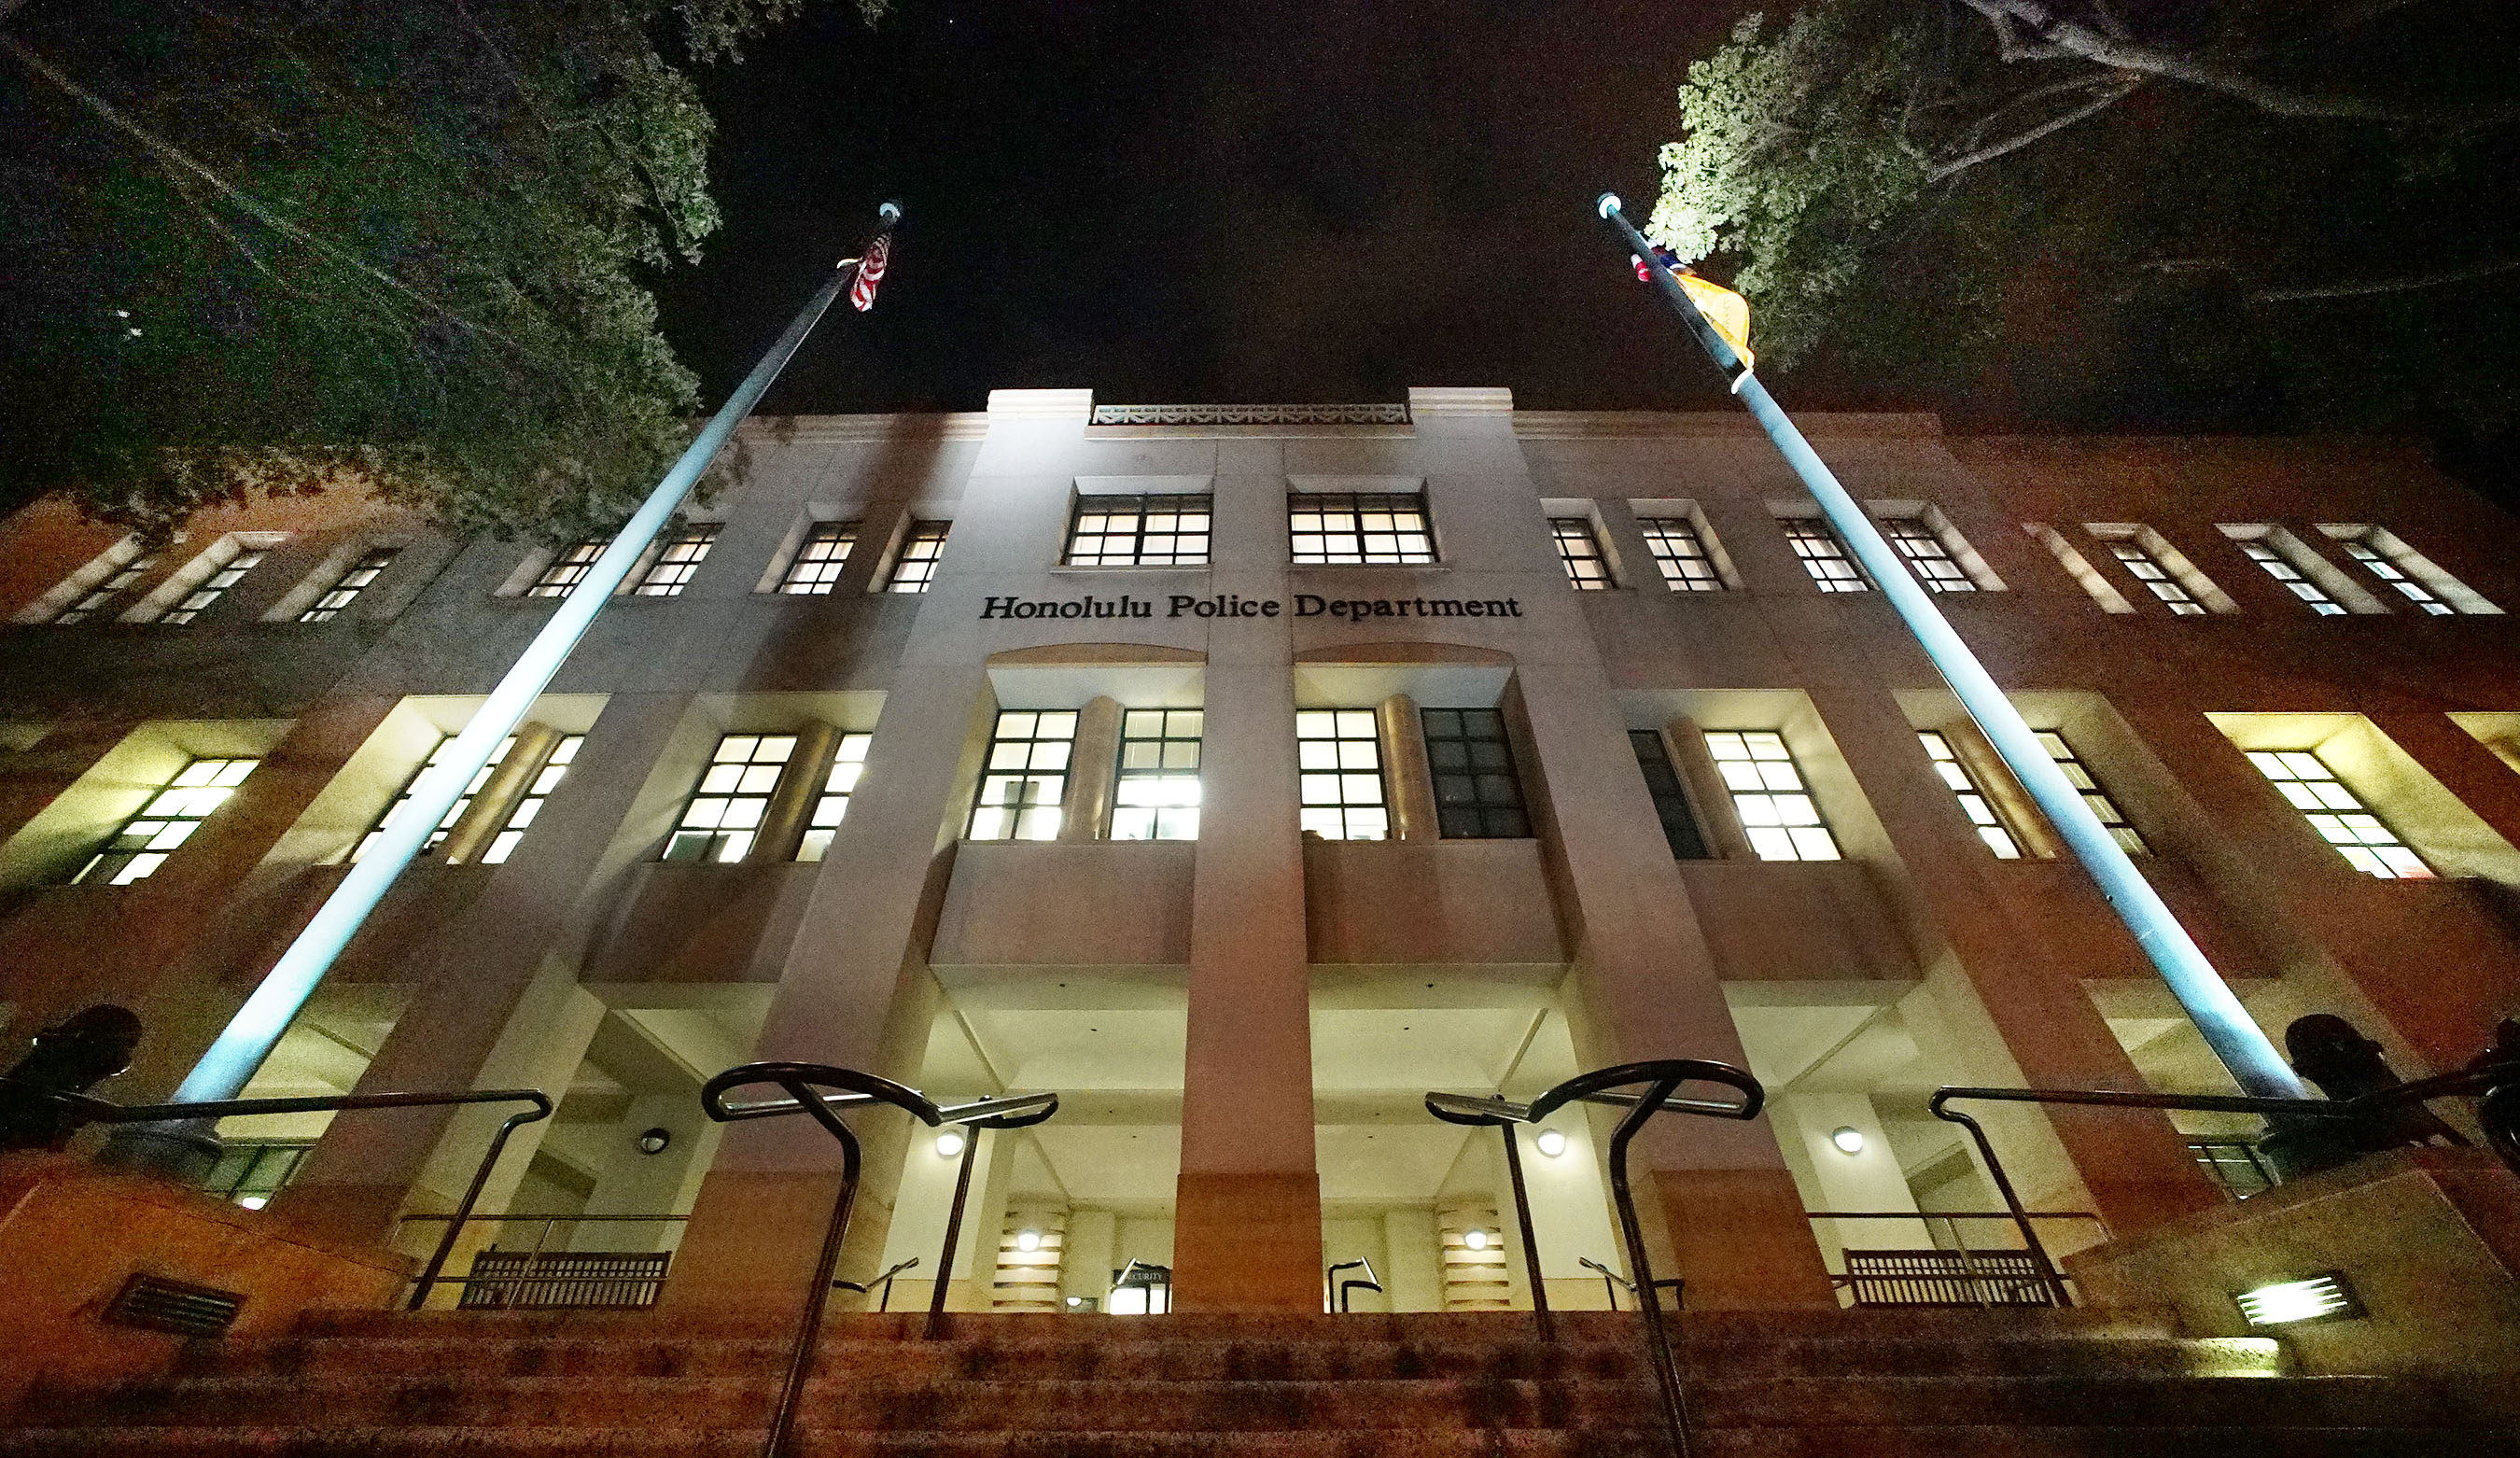 HPD Honolulu Police Department Building1. 5 may 2016.